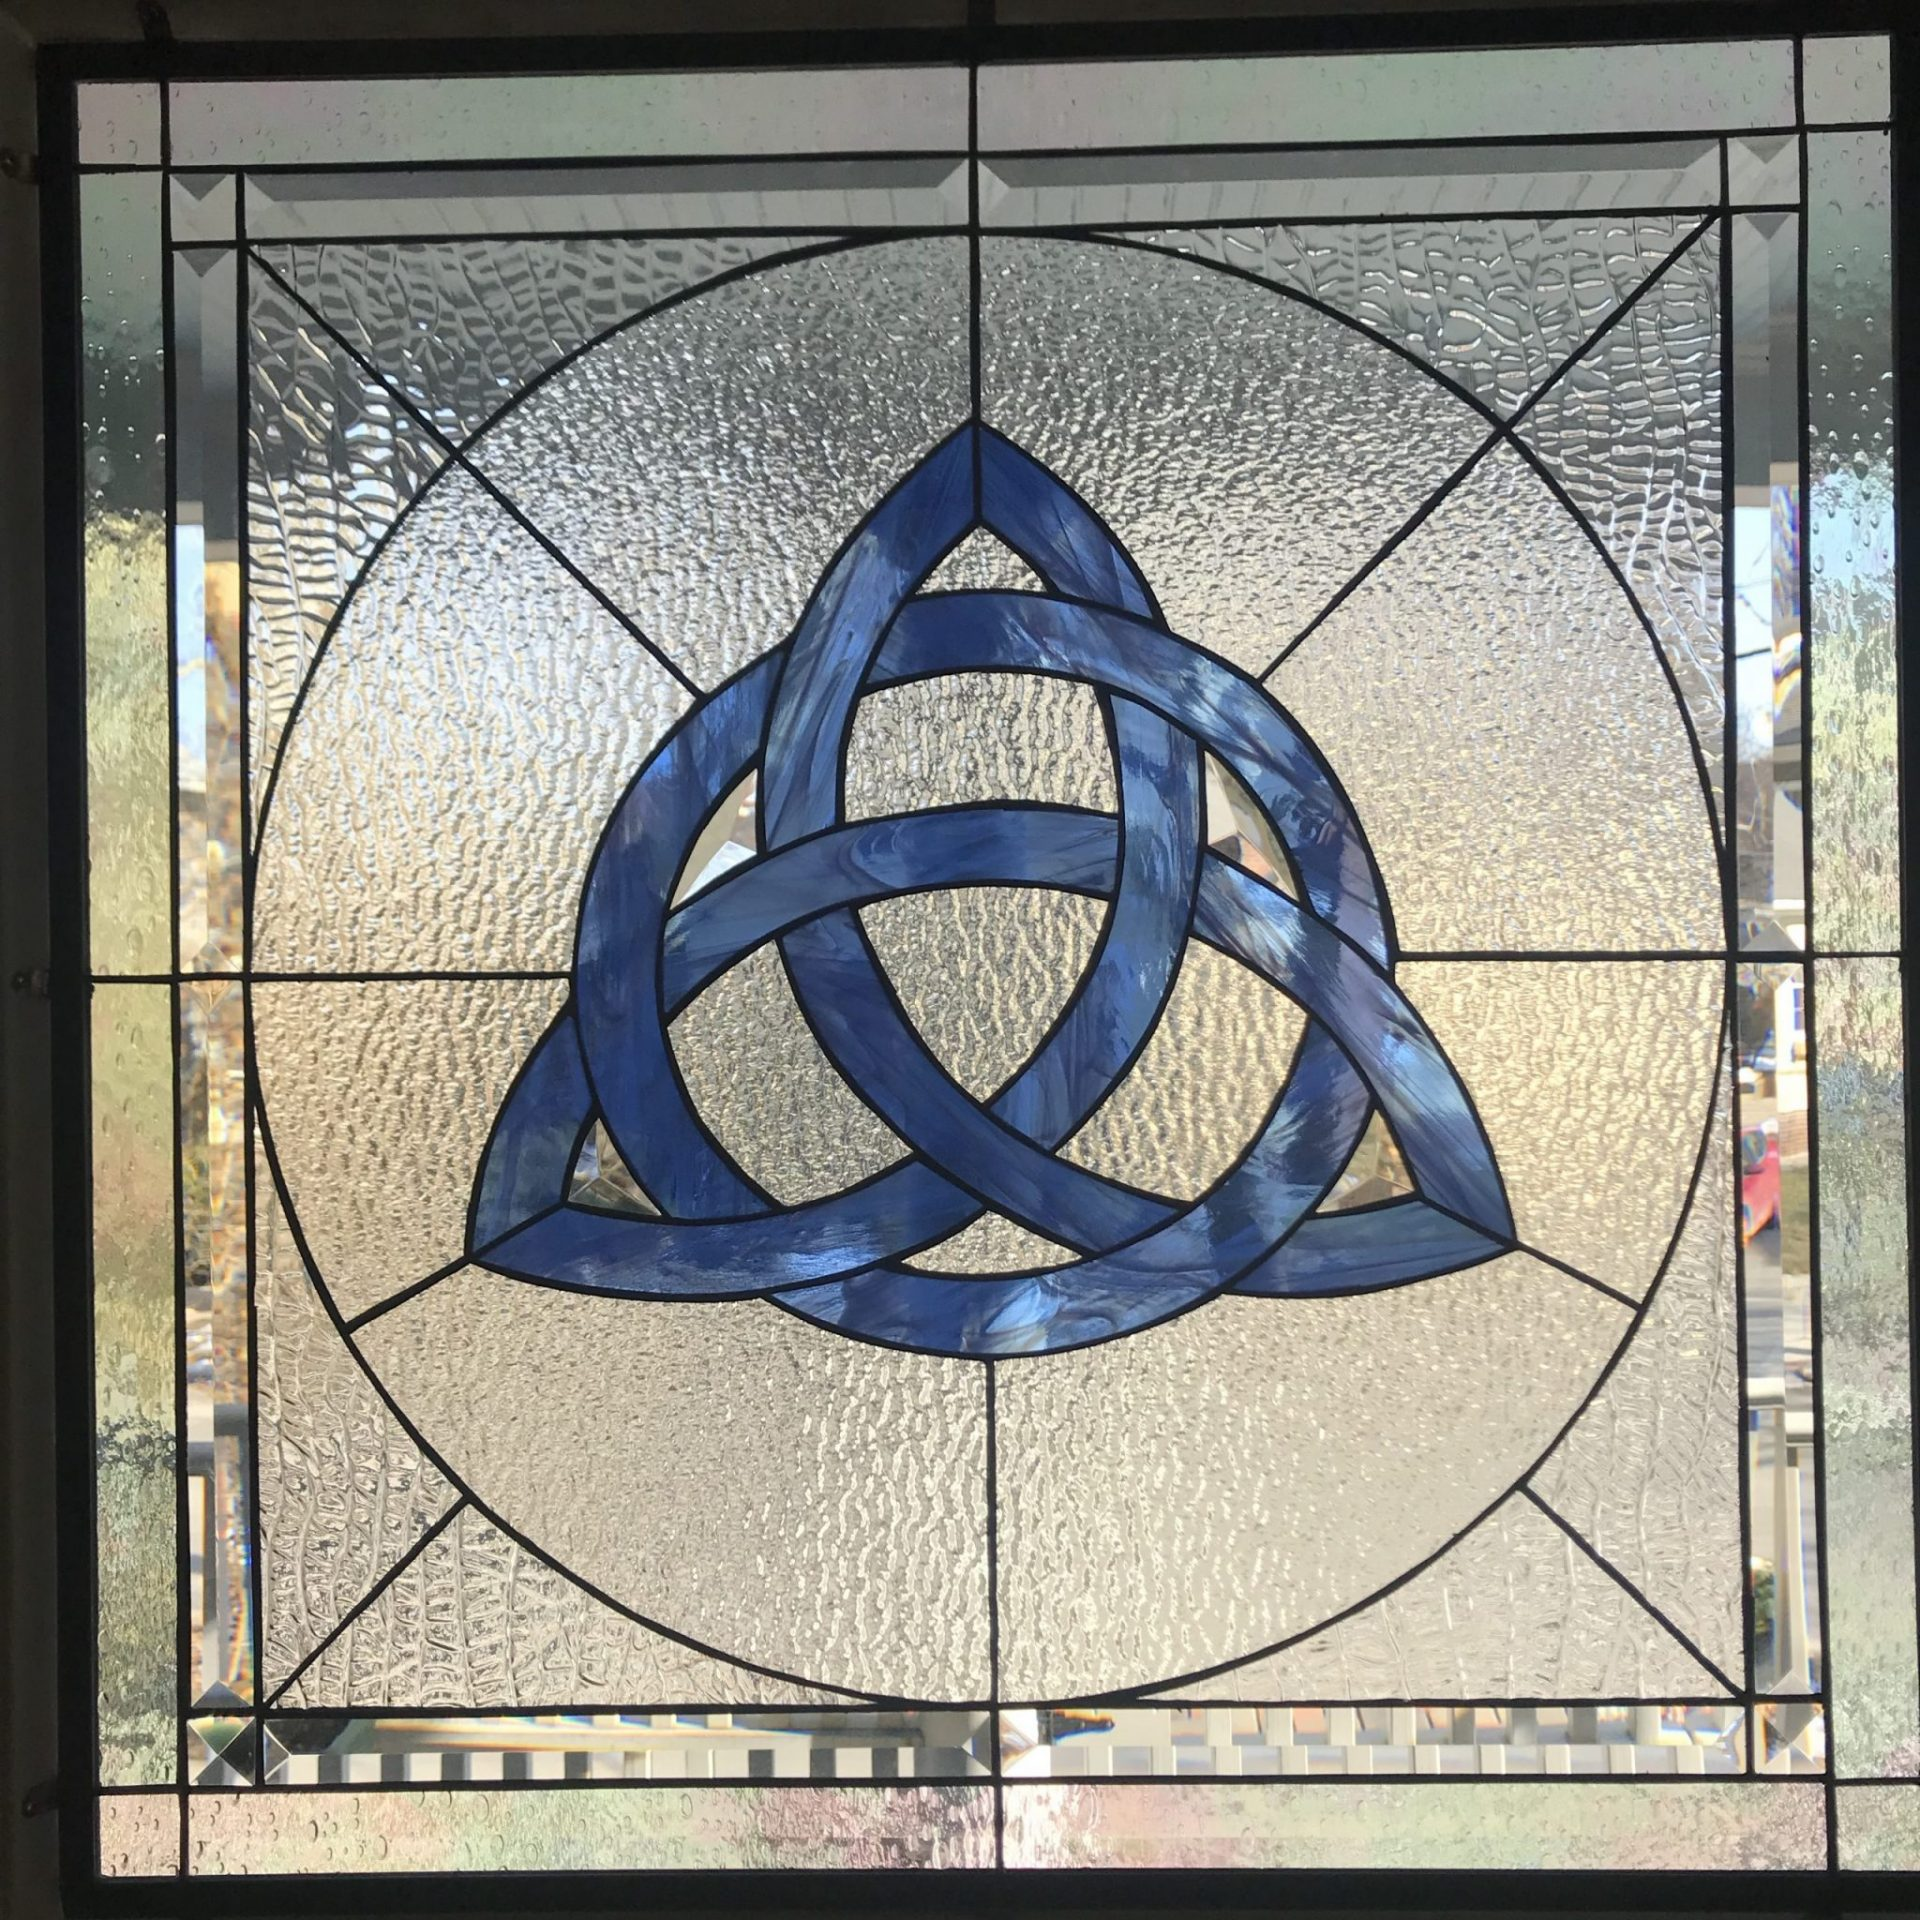 Celtic Knot stained glass inserted